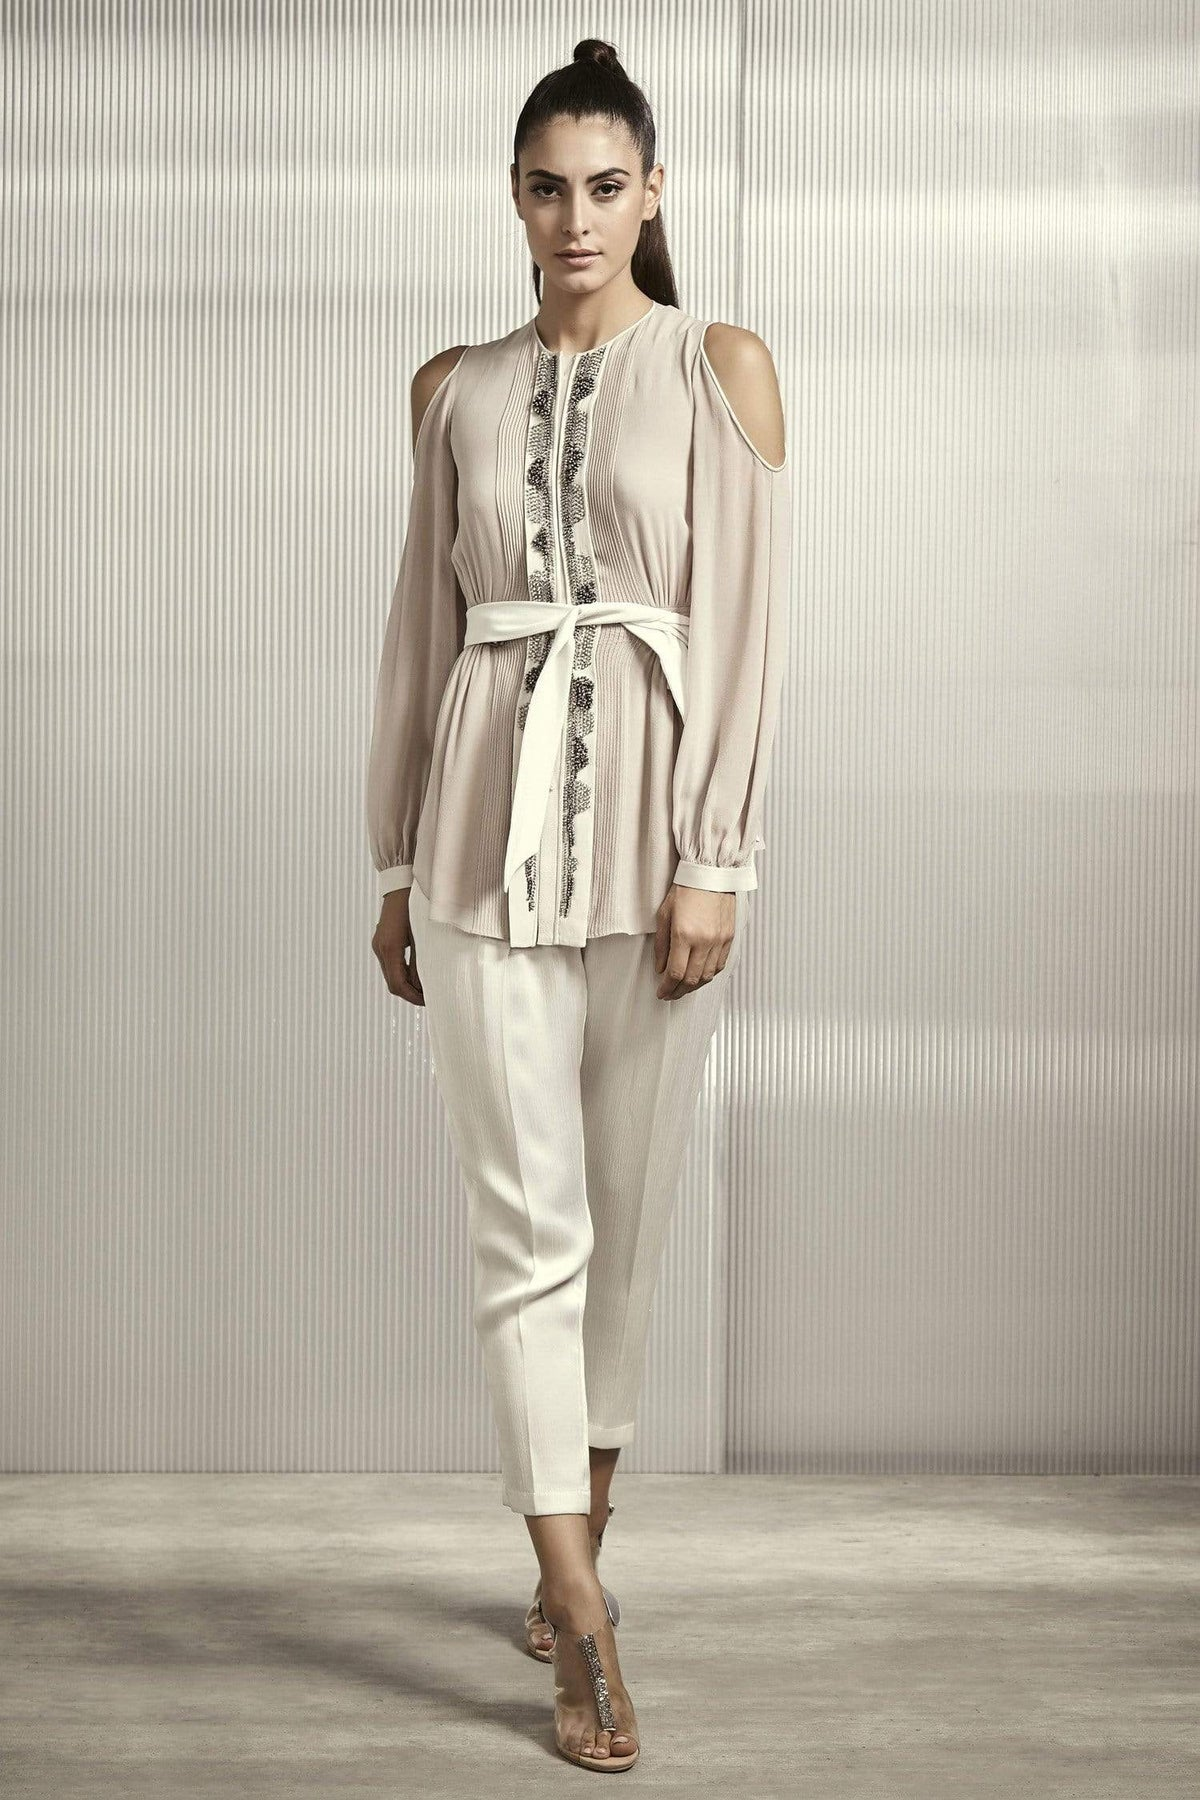 Rohit Gandhi + Rahul Khanna Shirts & Tops Cold shoulder polyester top